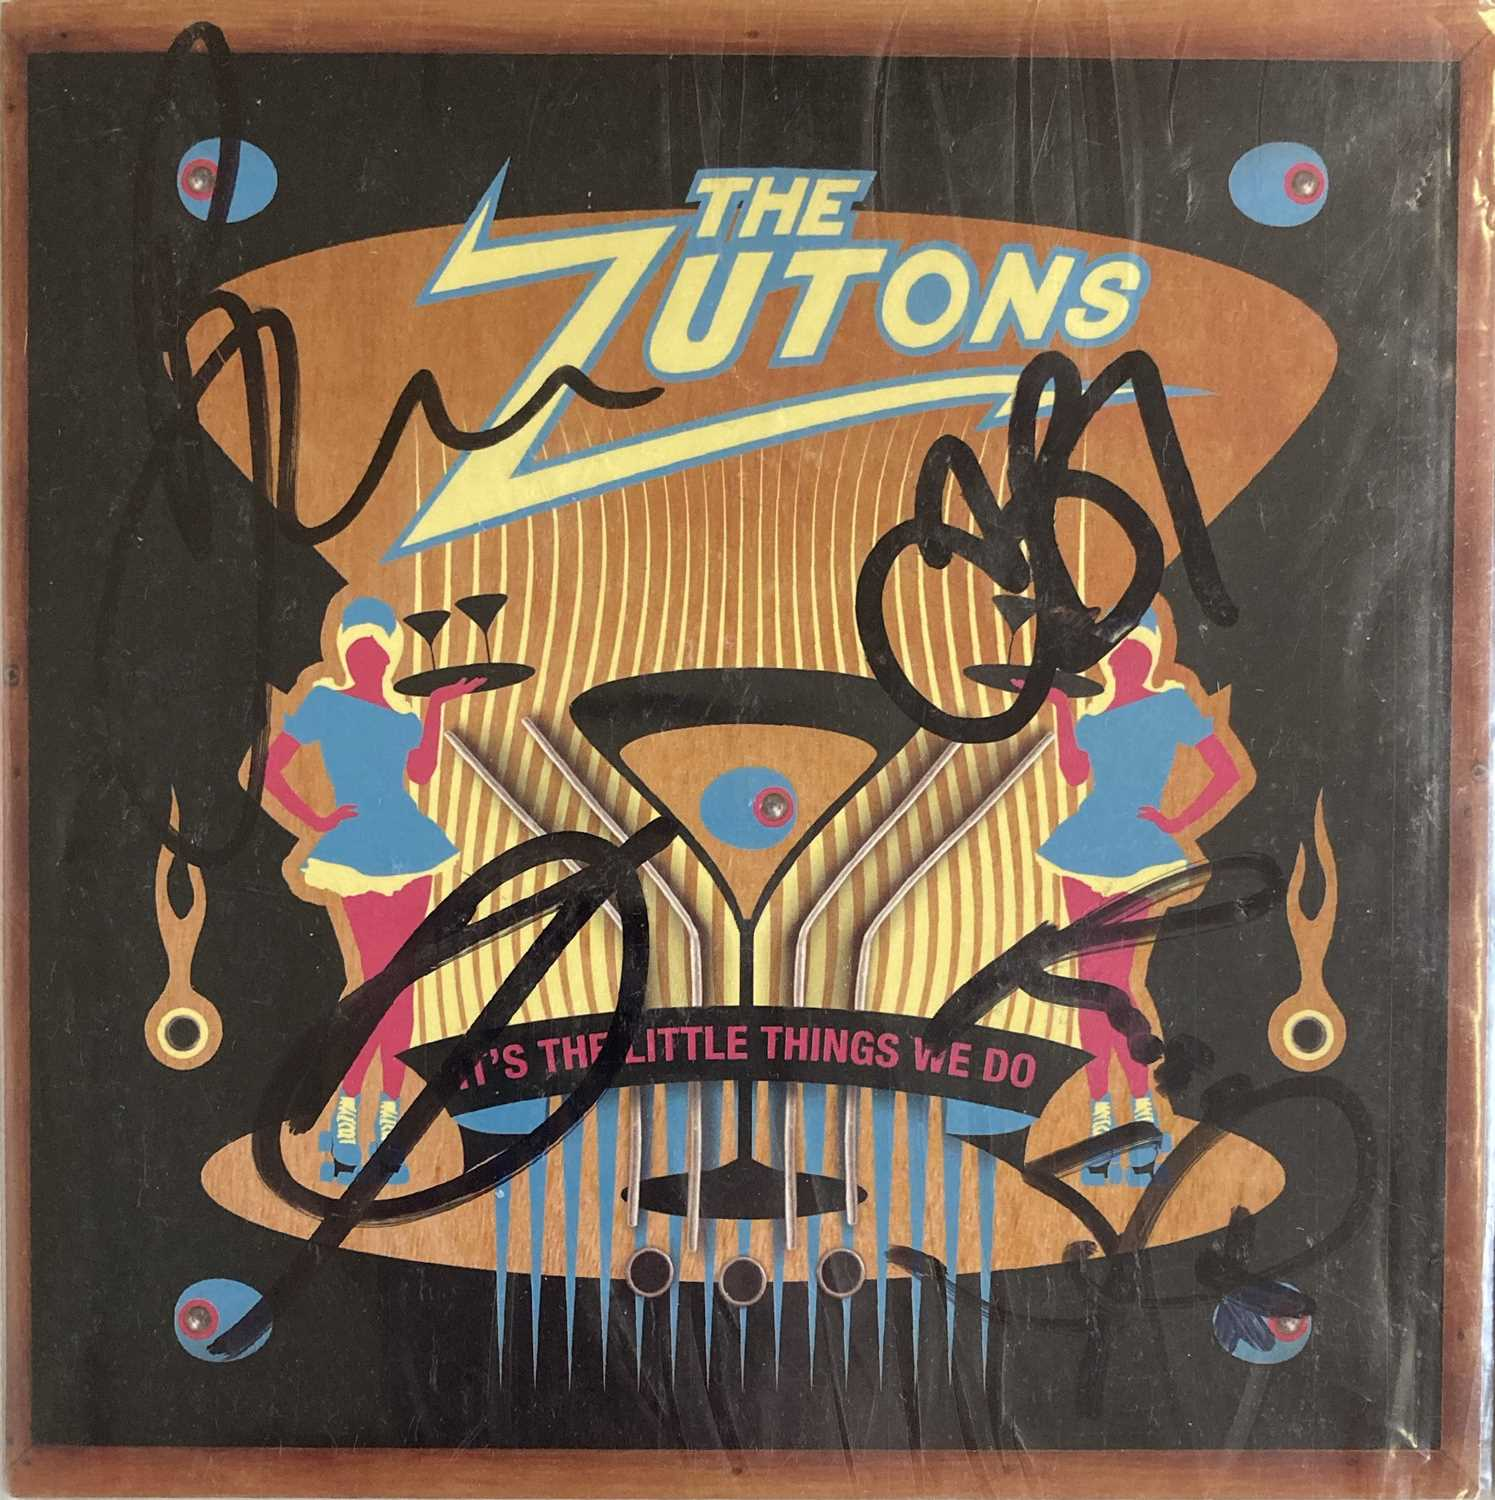 INDIE ARTISTS SIGNED ITEMS - HARD FI. - Image 5 of 11